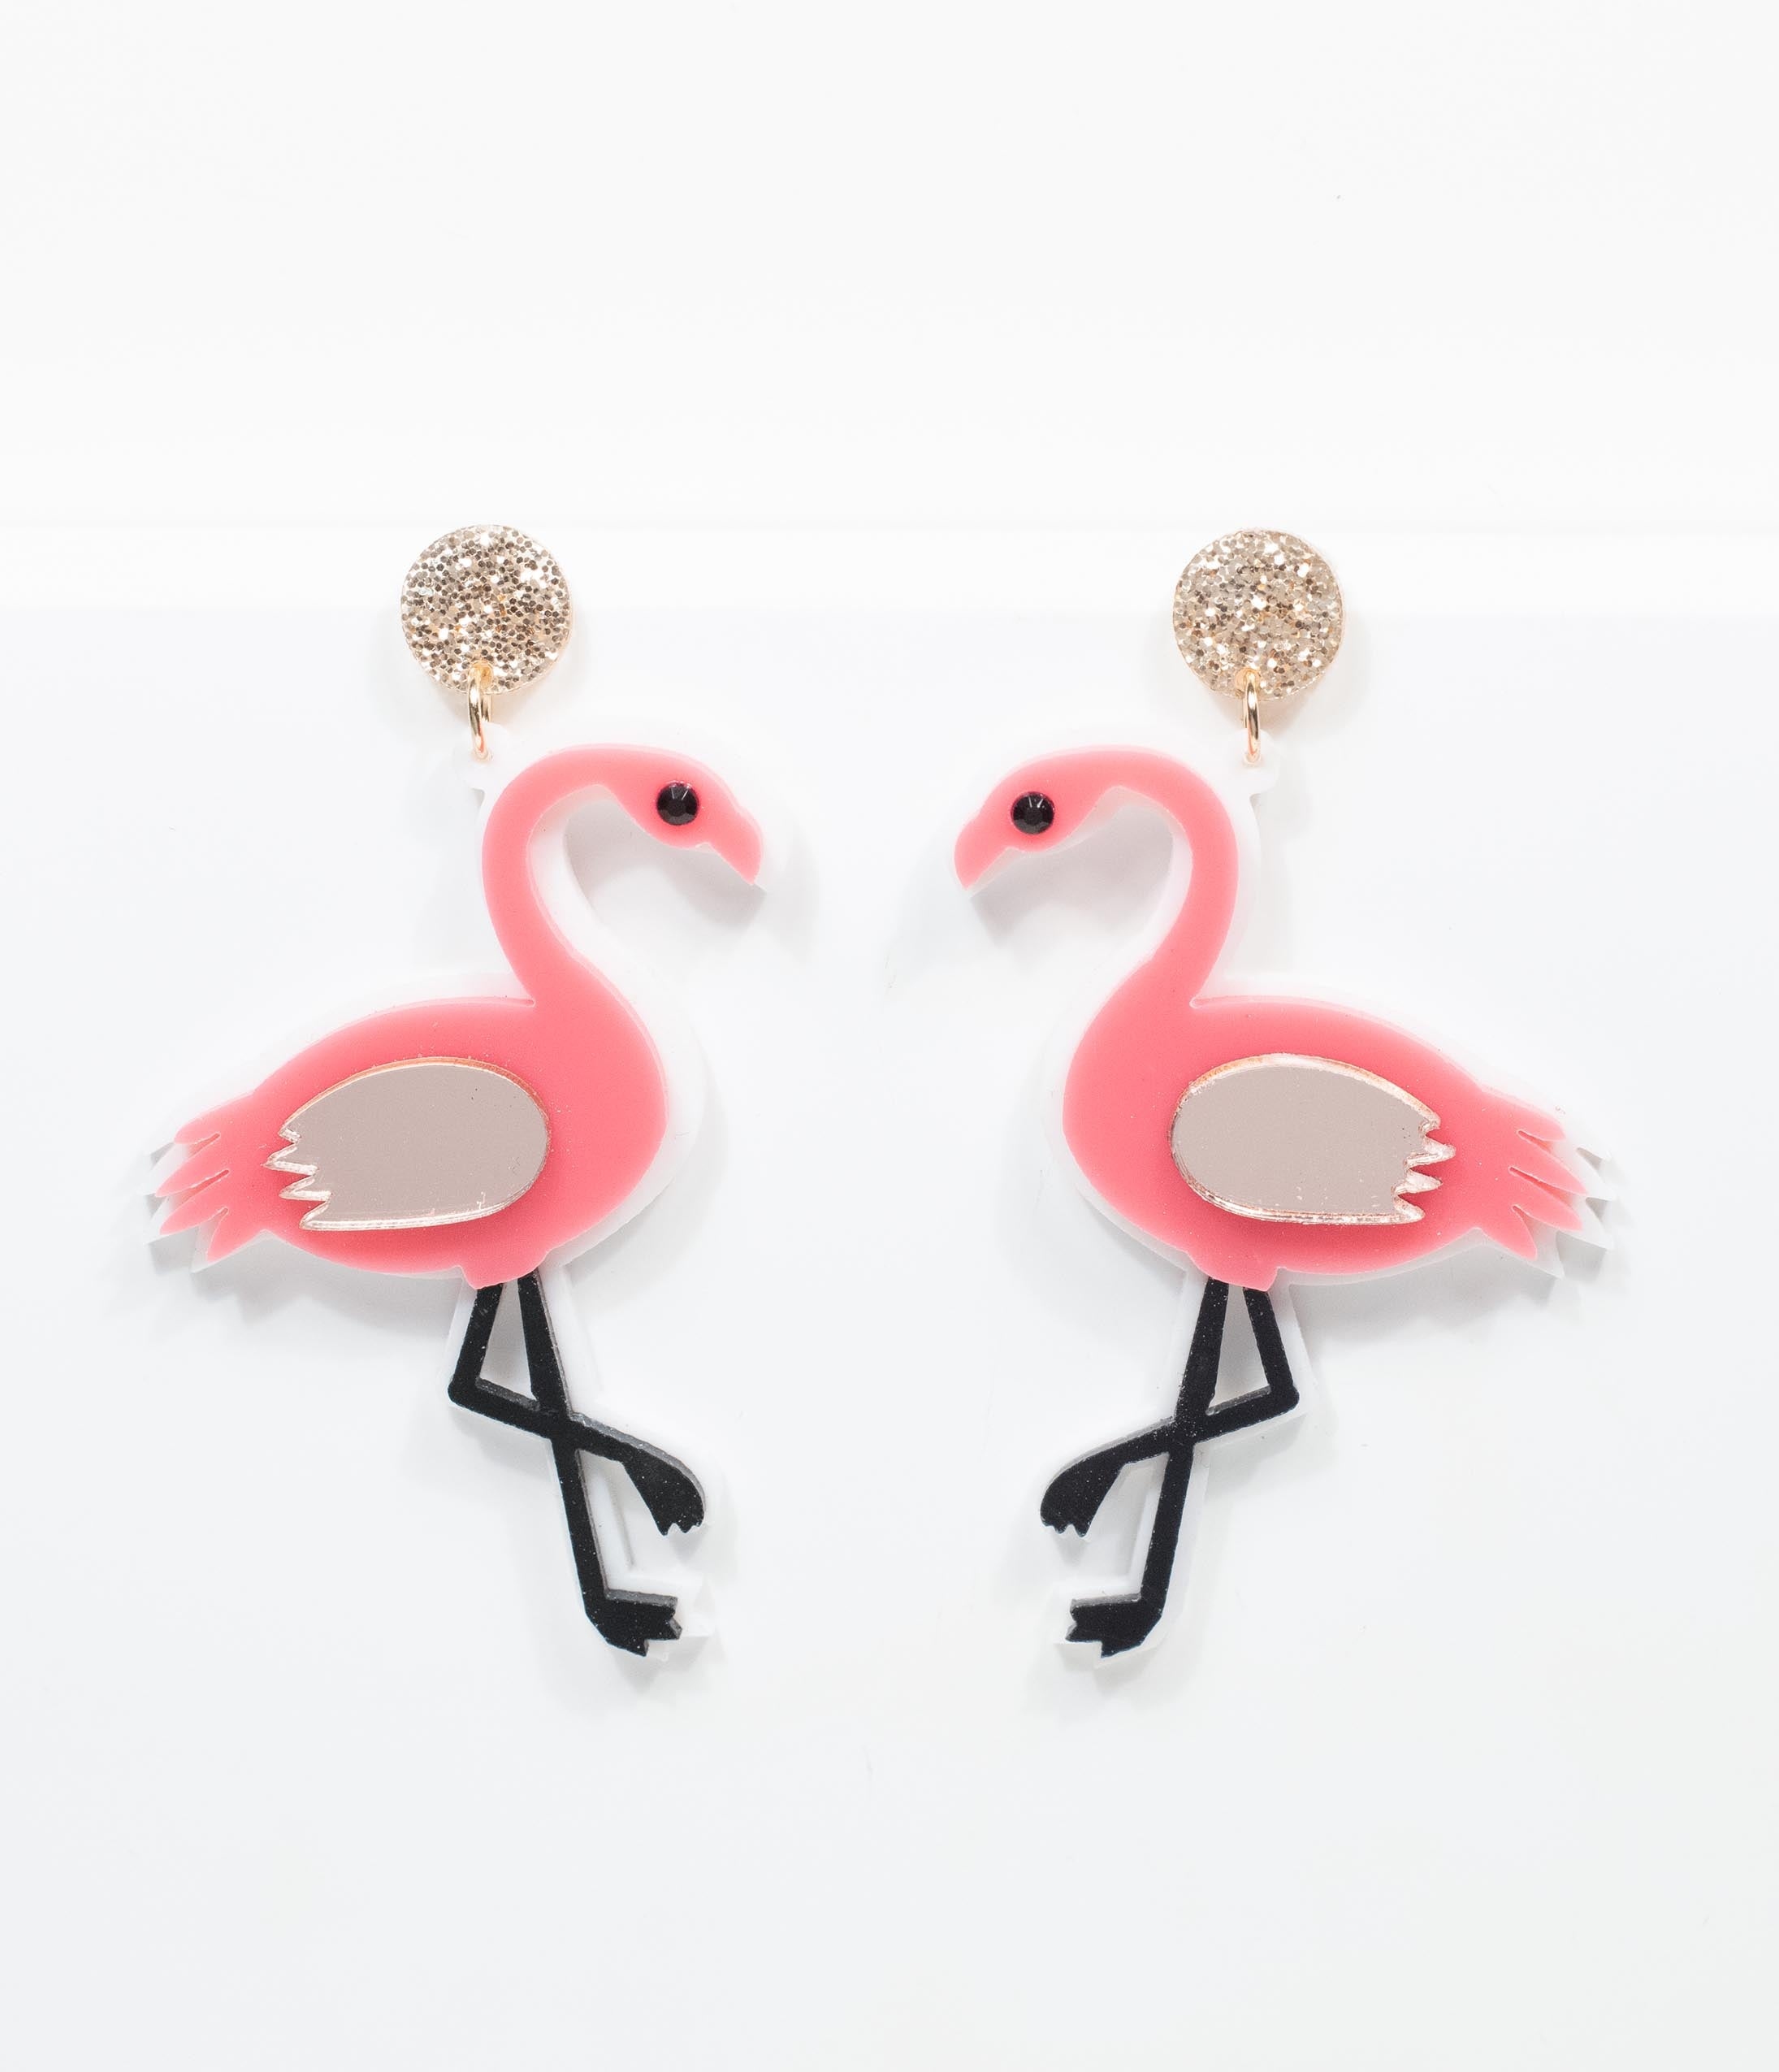 Vintage Style Jewelry, Retro Jewelry Pink Flamingos Drop Earrings $24.00 AT vintagedancer.com